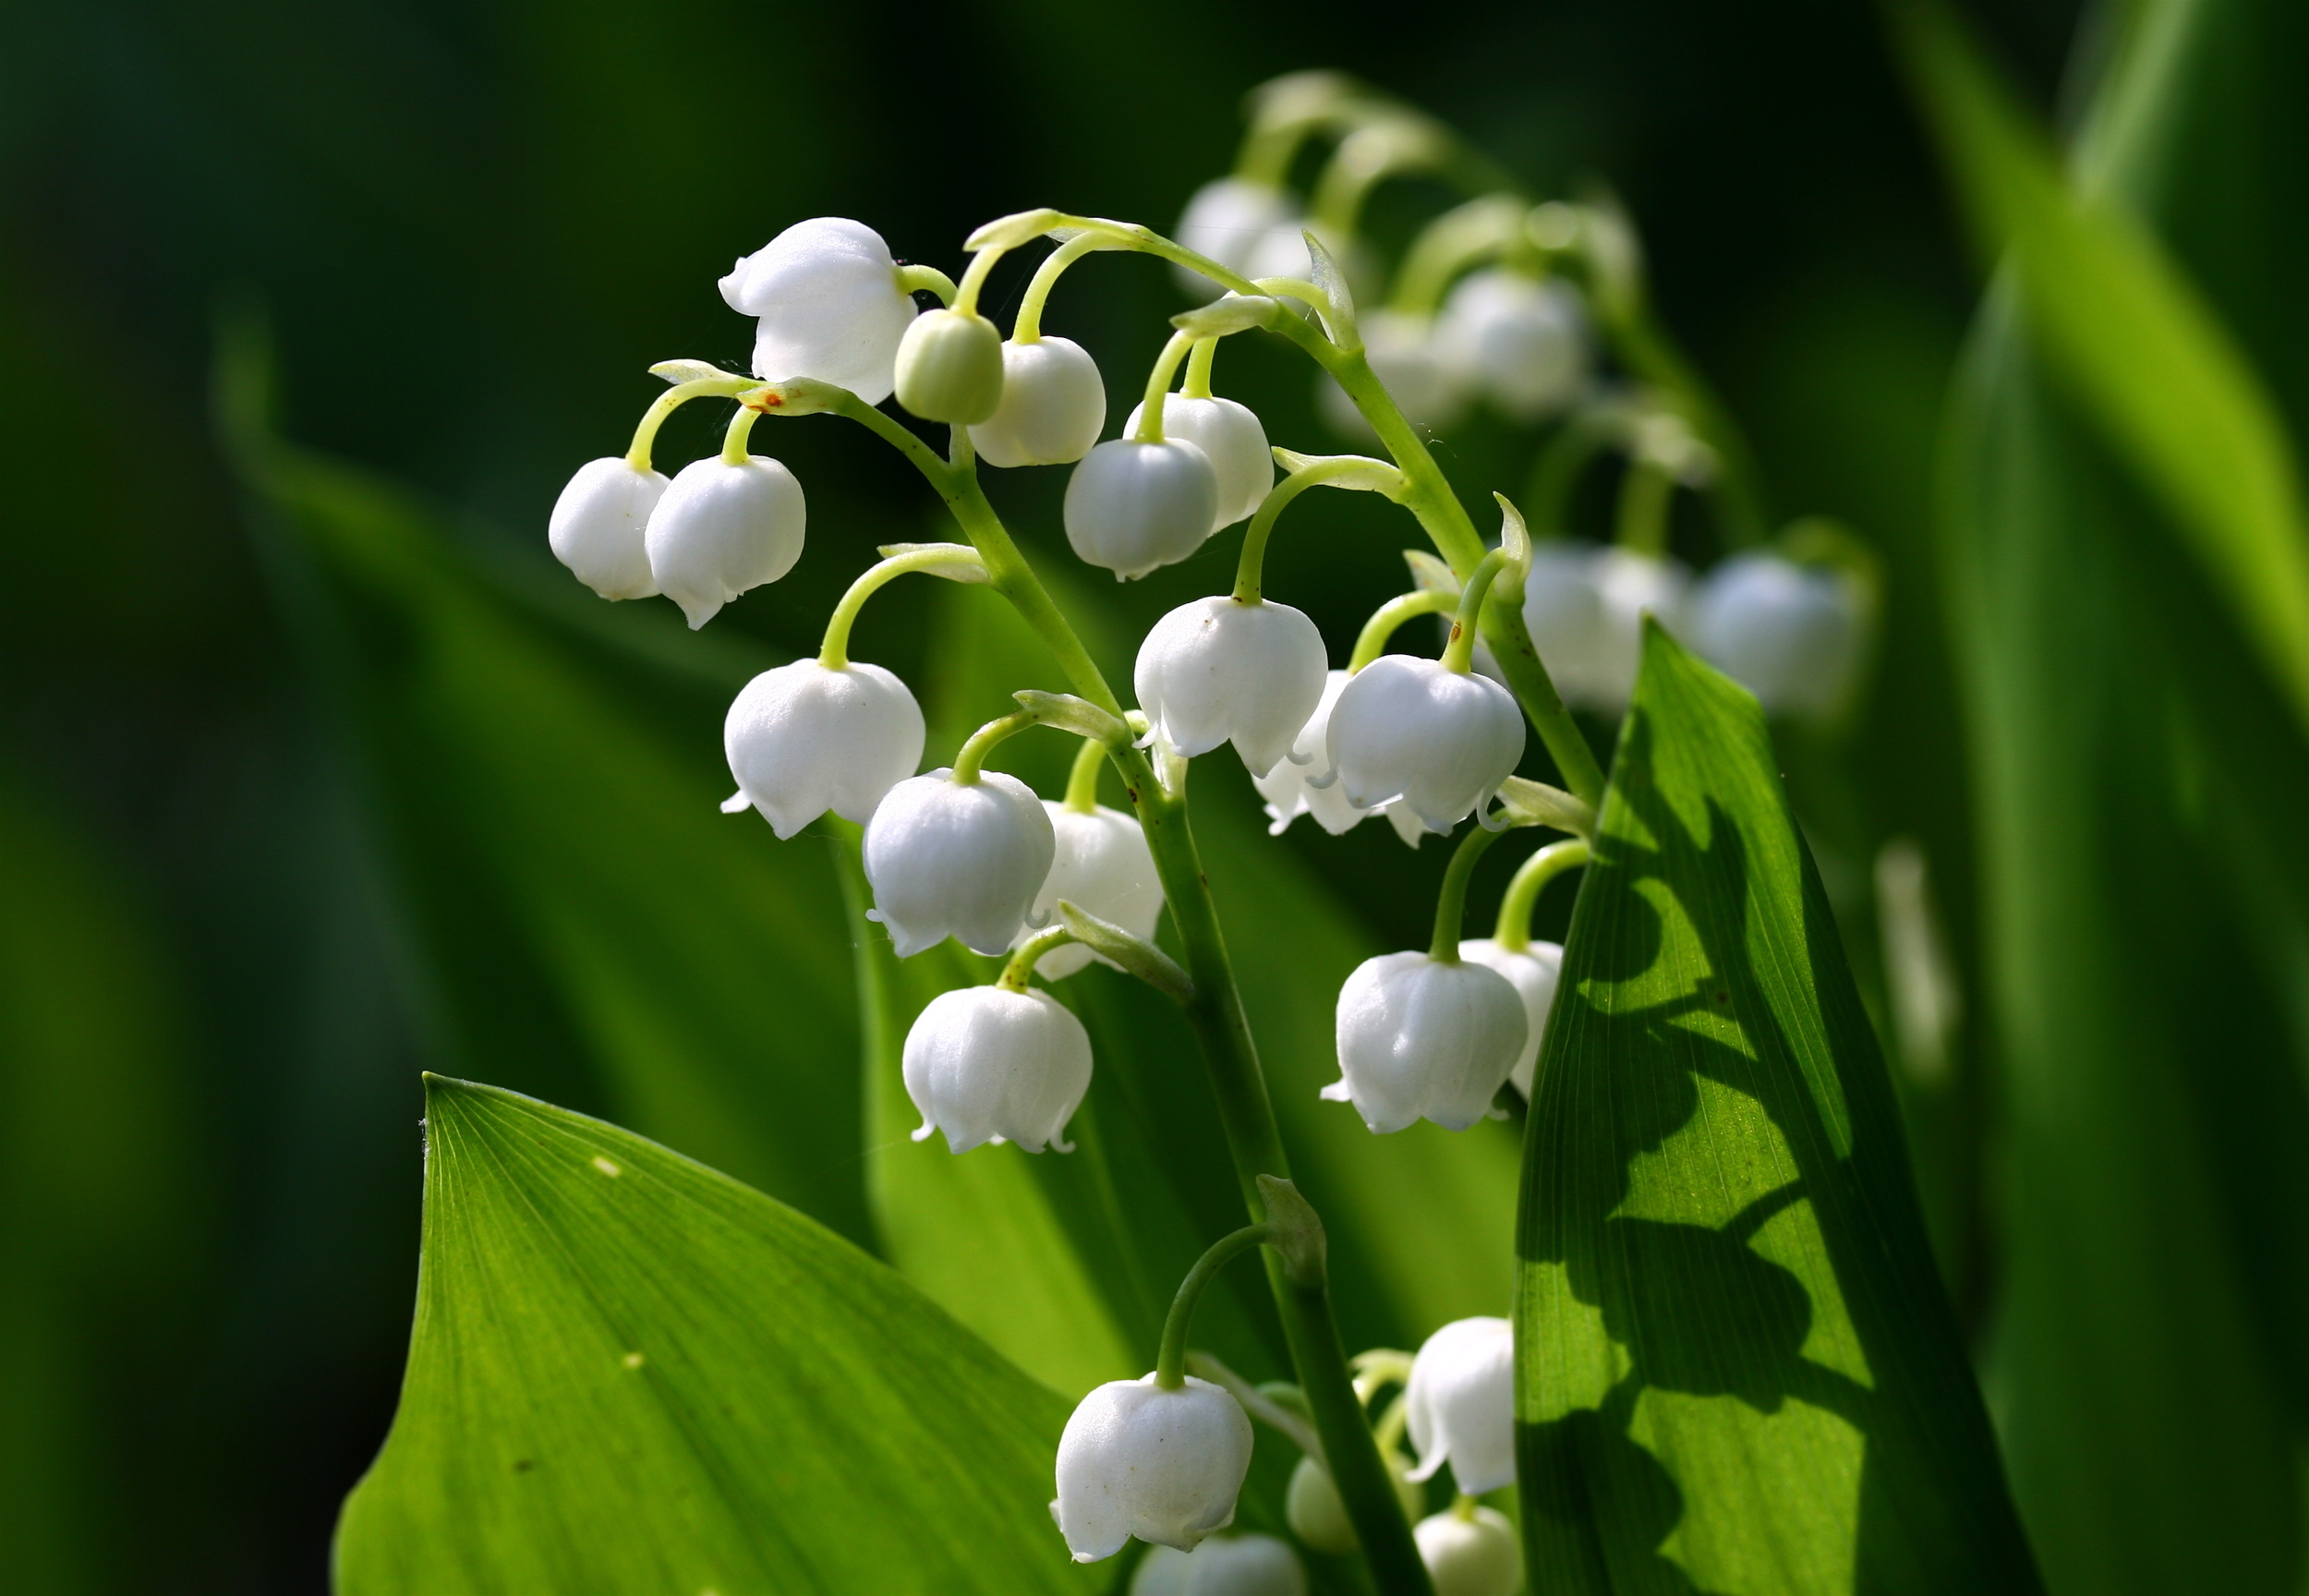 Nobody Can Name All 19 Of These Common Flowers Playbuzz